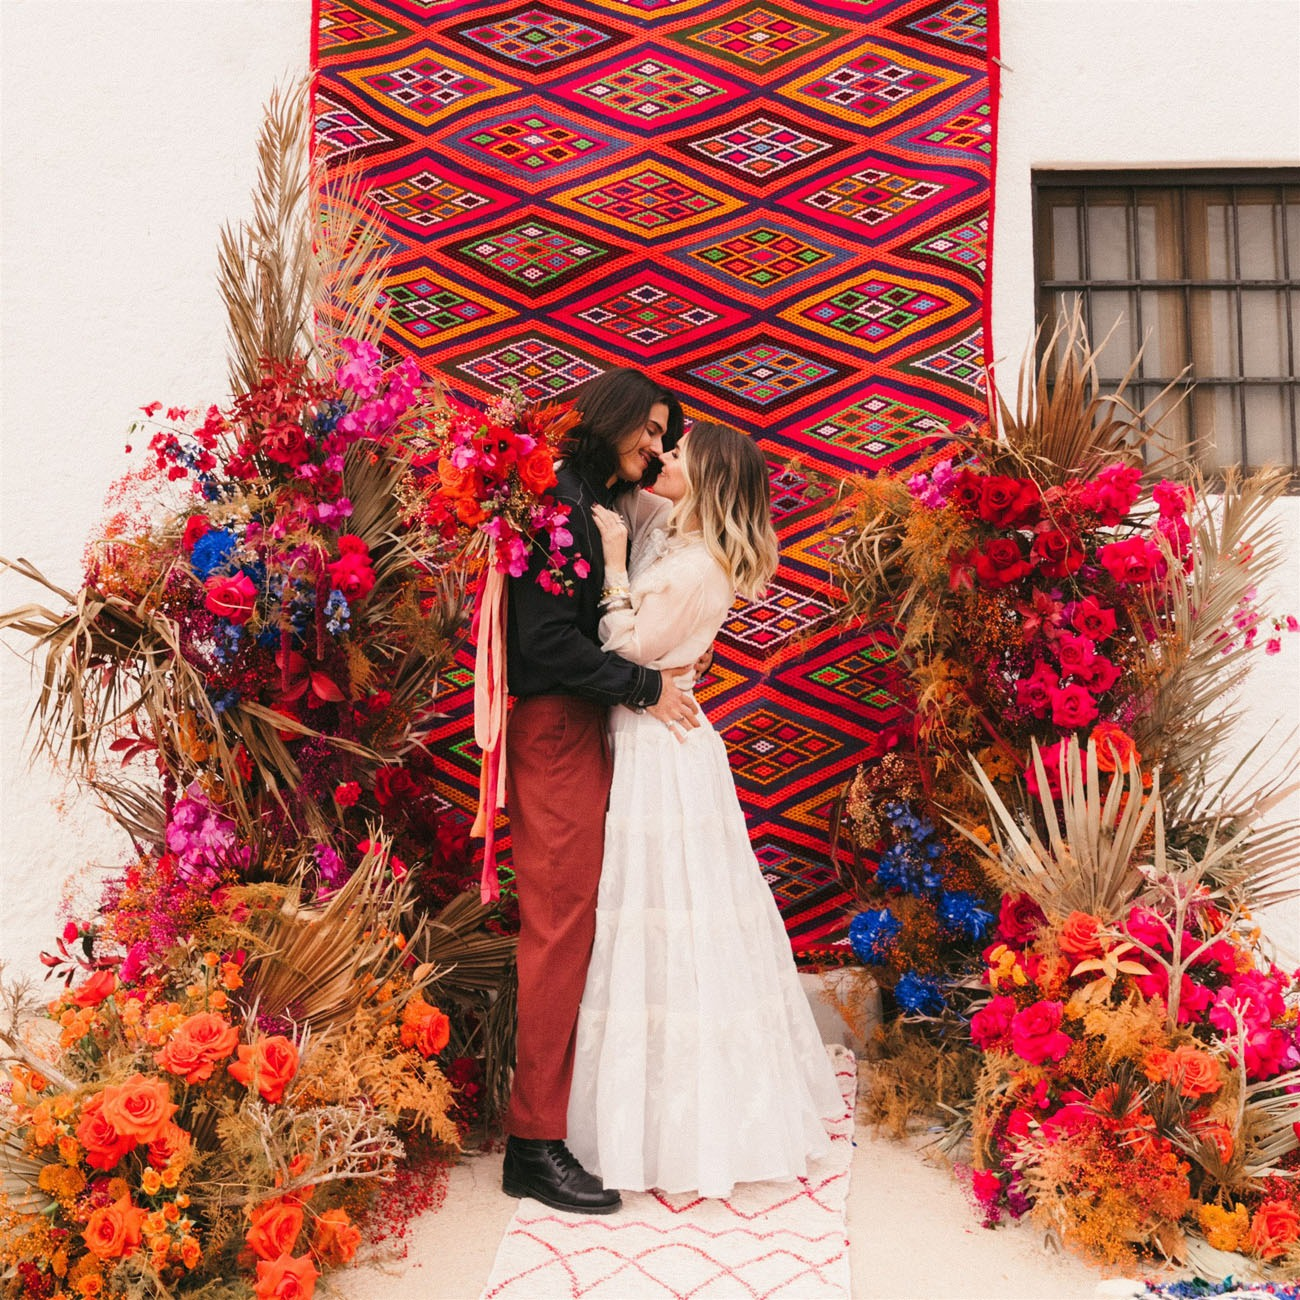 vibrant red tapestry rug wedding backdrop